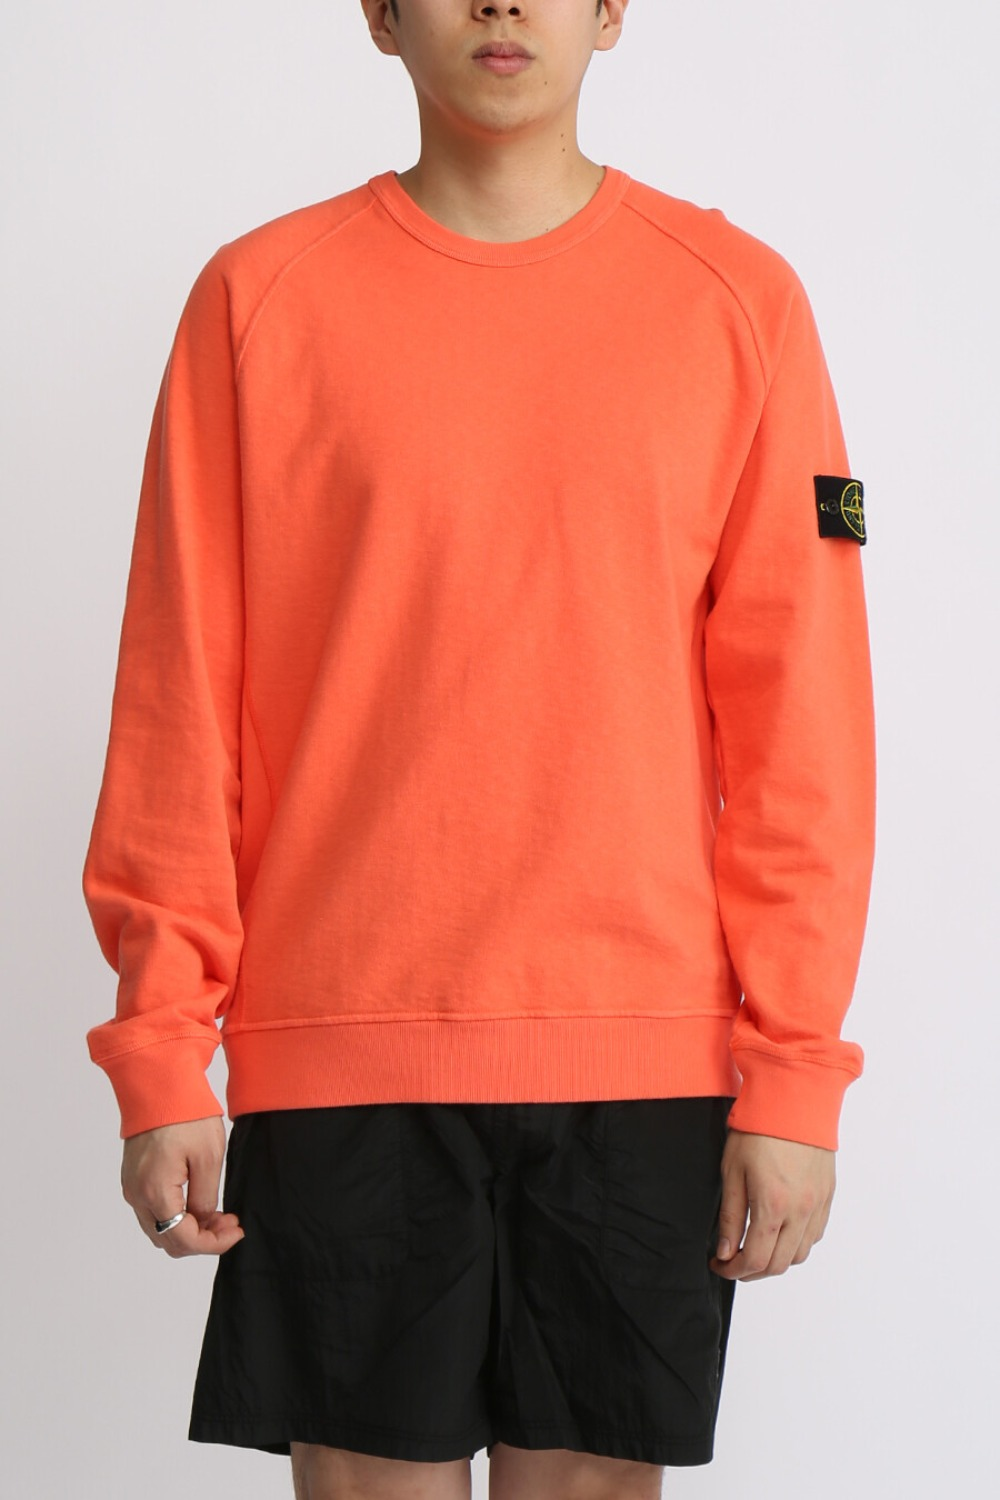 OLD EFFECT BRUSHED COTTON SWEATSHIRT(81M2060) ORANGE